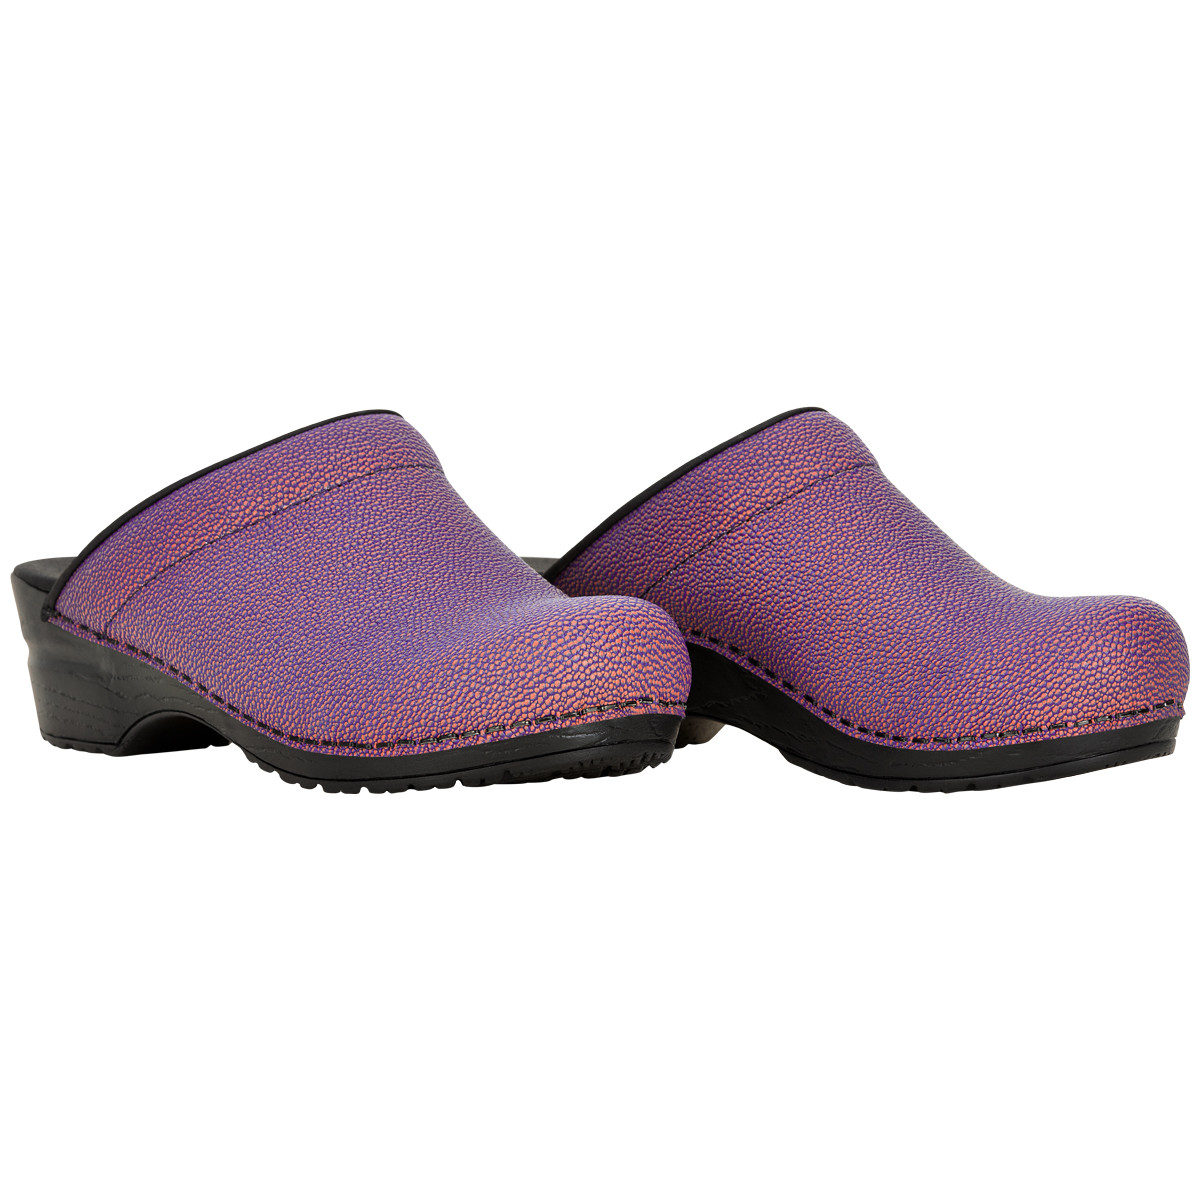 Sanita Original Sting Clogs 470038 35